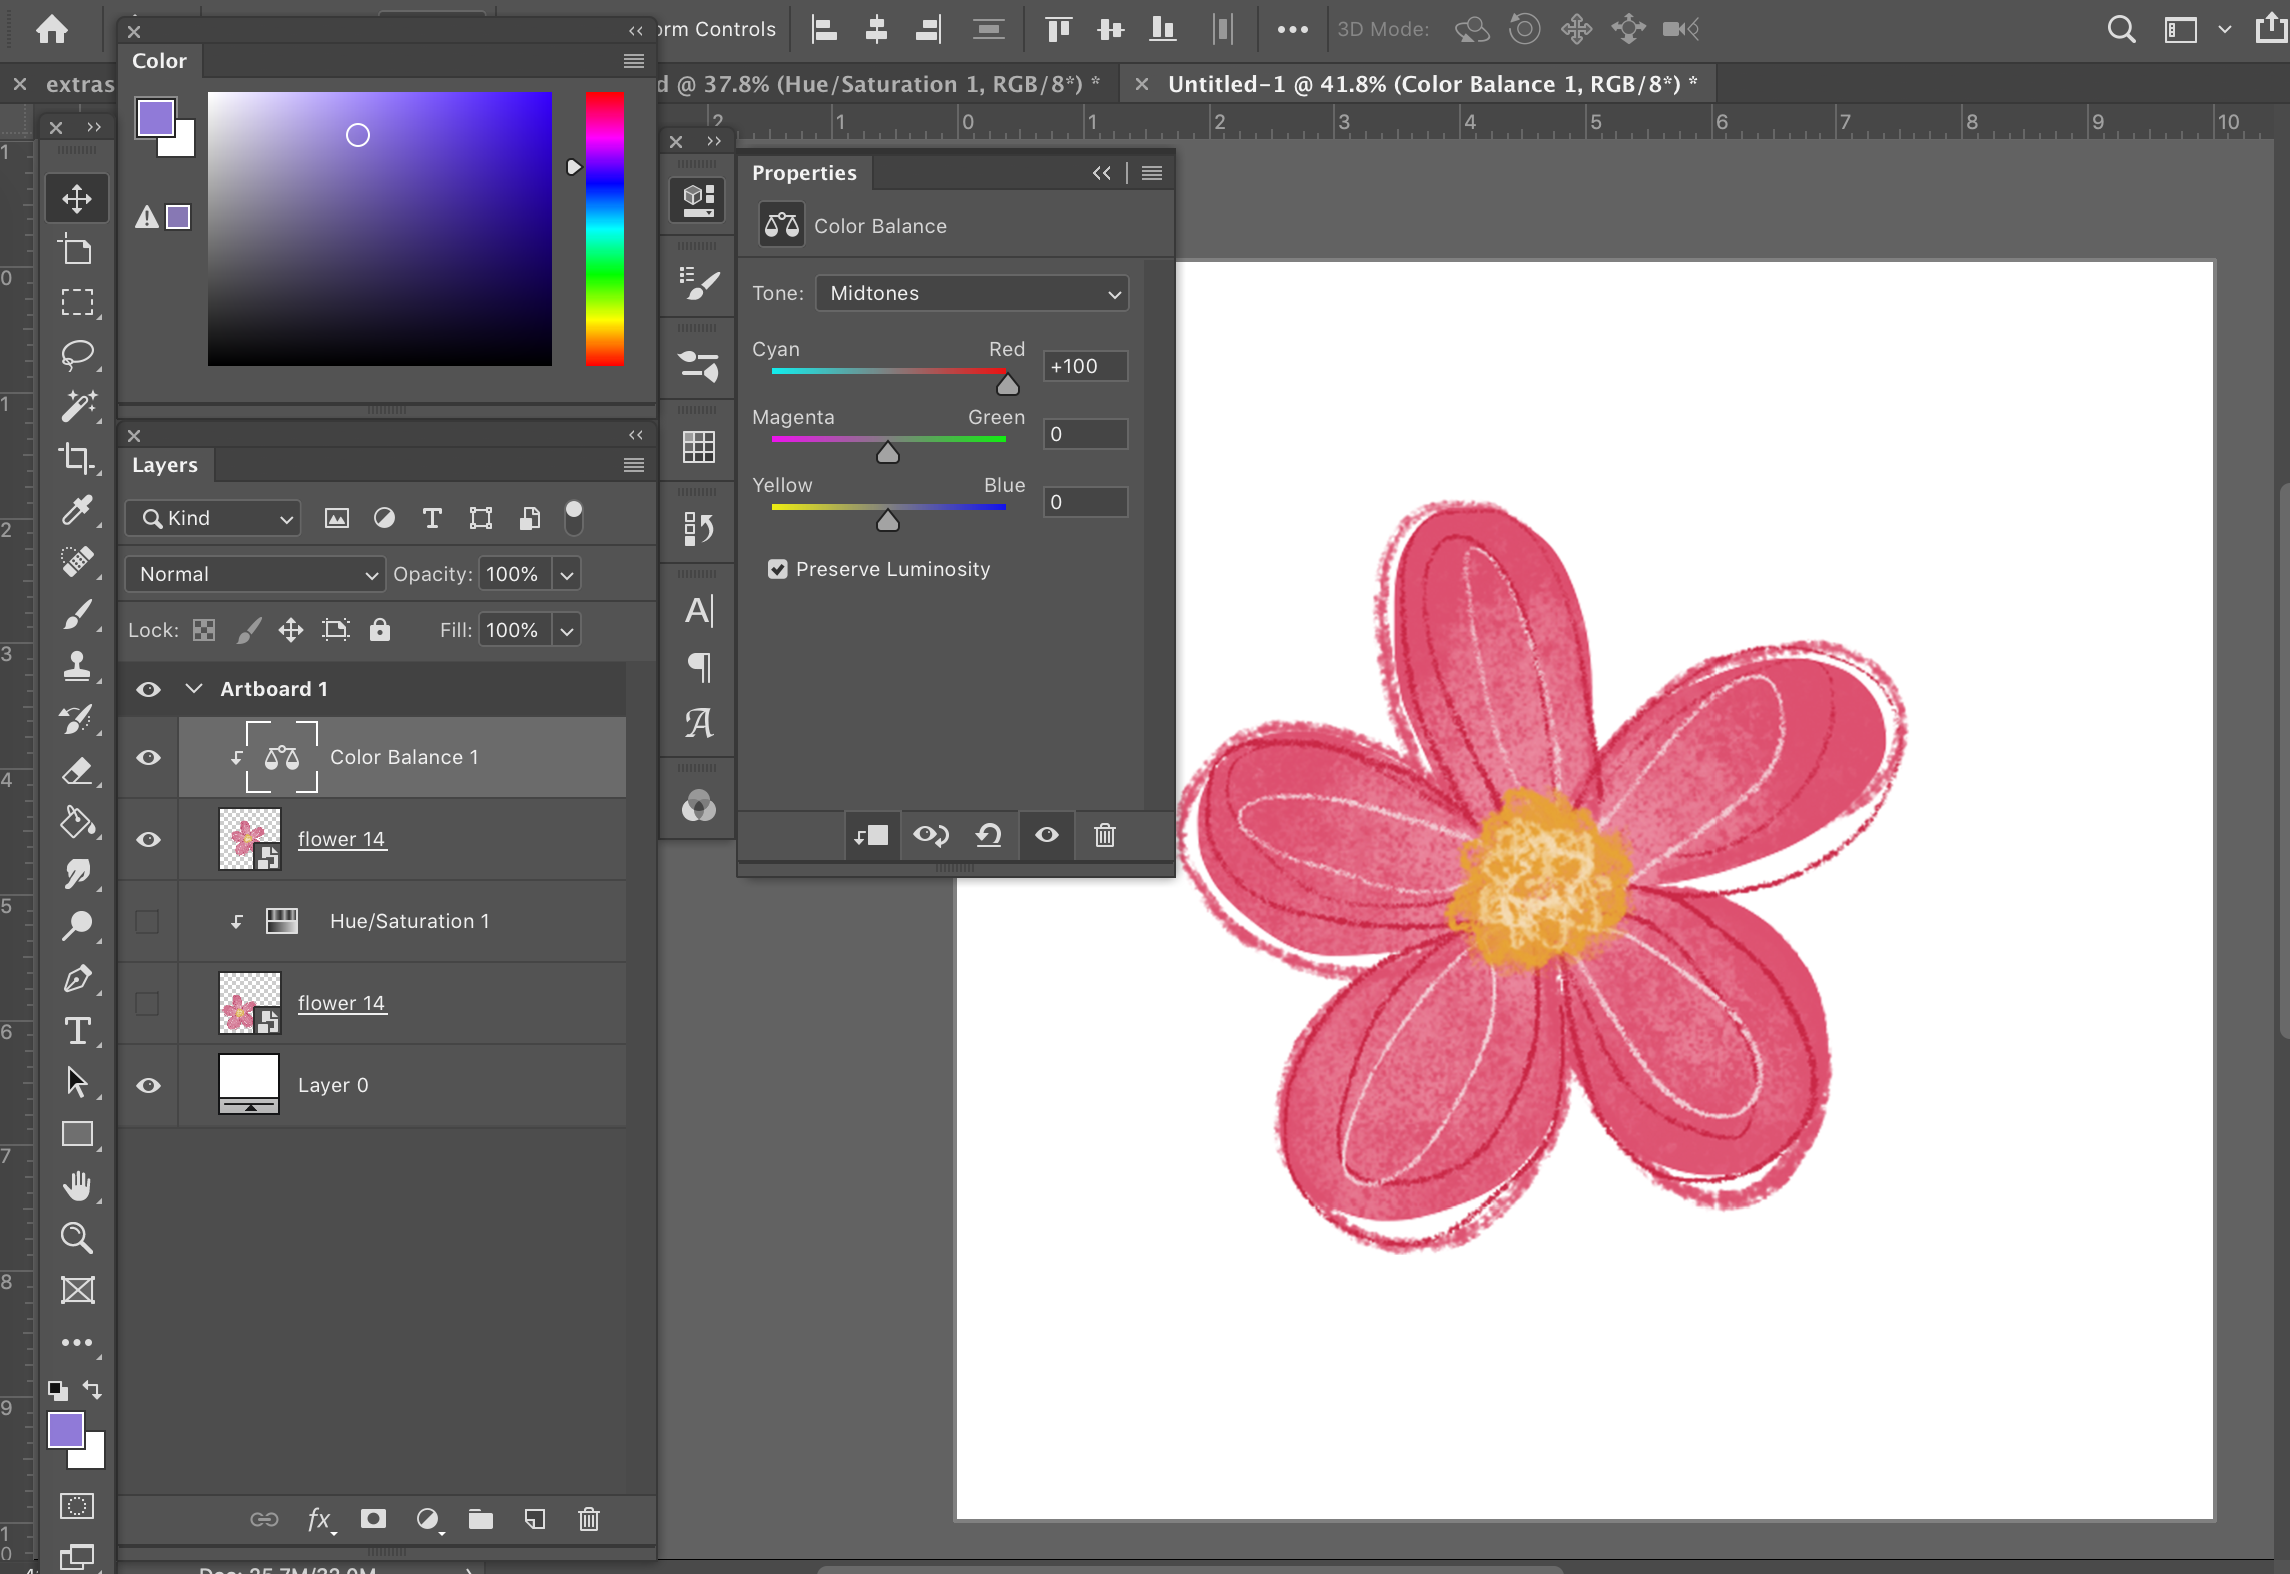 pink flower CB most red.png